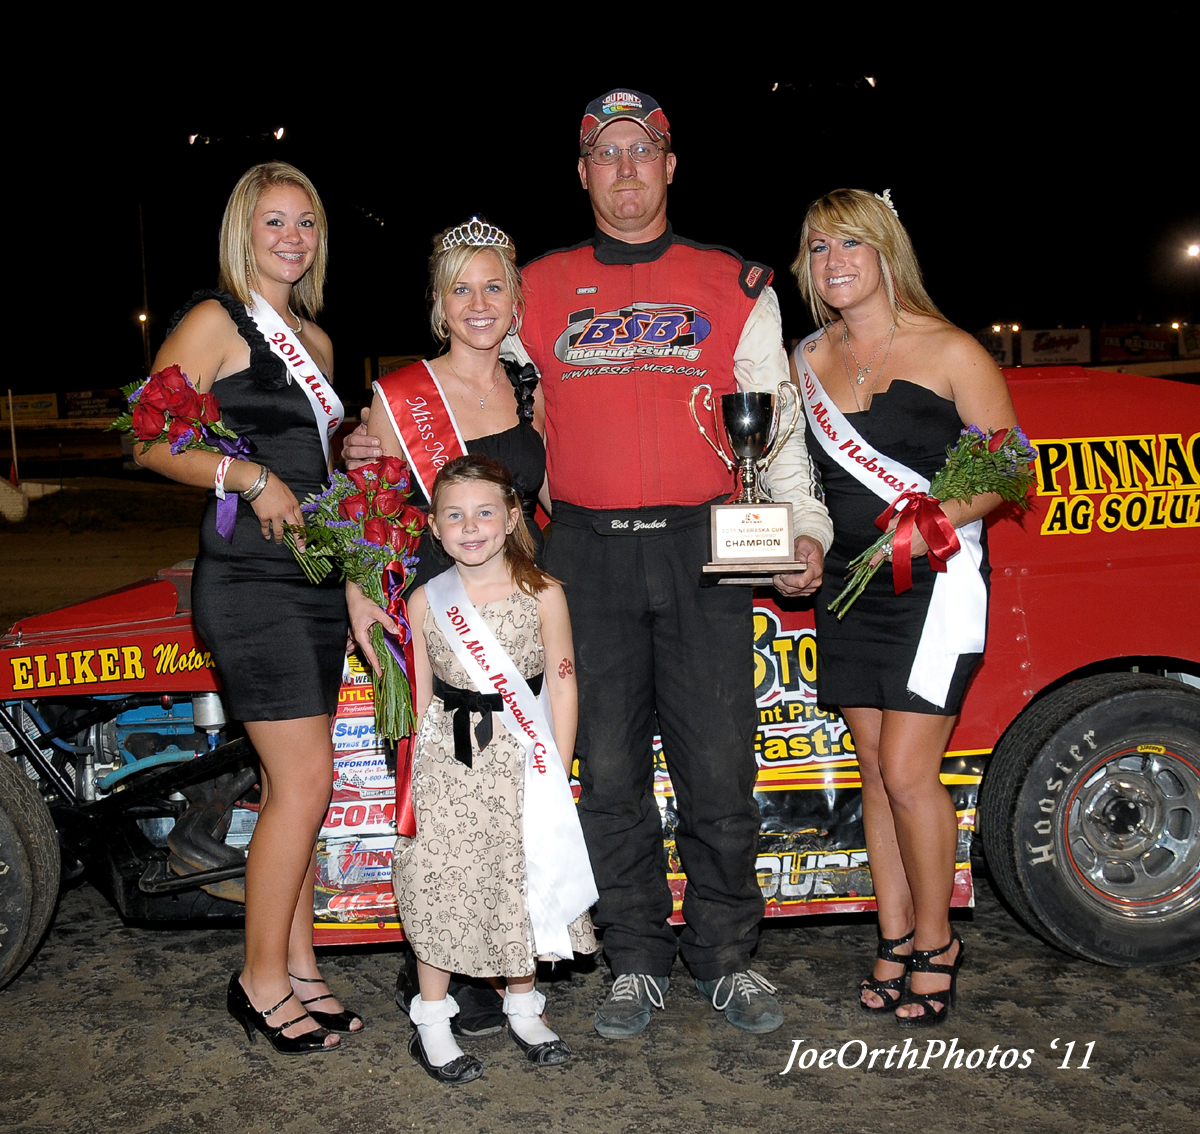 eagle-09-11-11-ne-cup-bob-zoubek-with-2011-miss-nebraska-cup-queen-deanne-kathol-and-2011-finalist-elle-patocka-and-lindsey-flodman-miss-princess